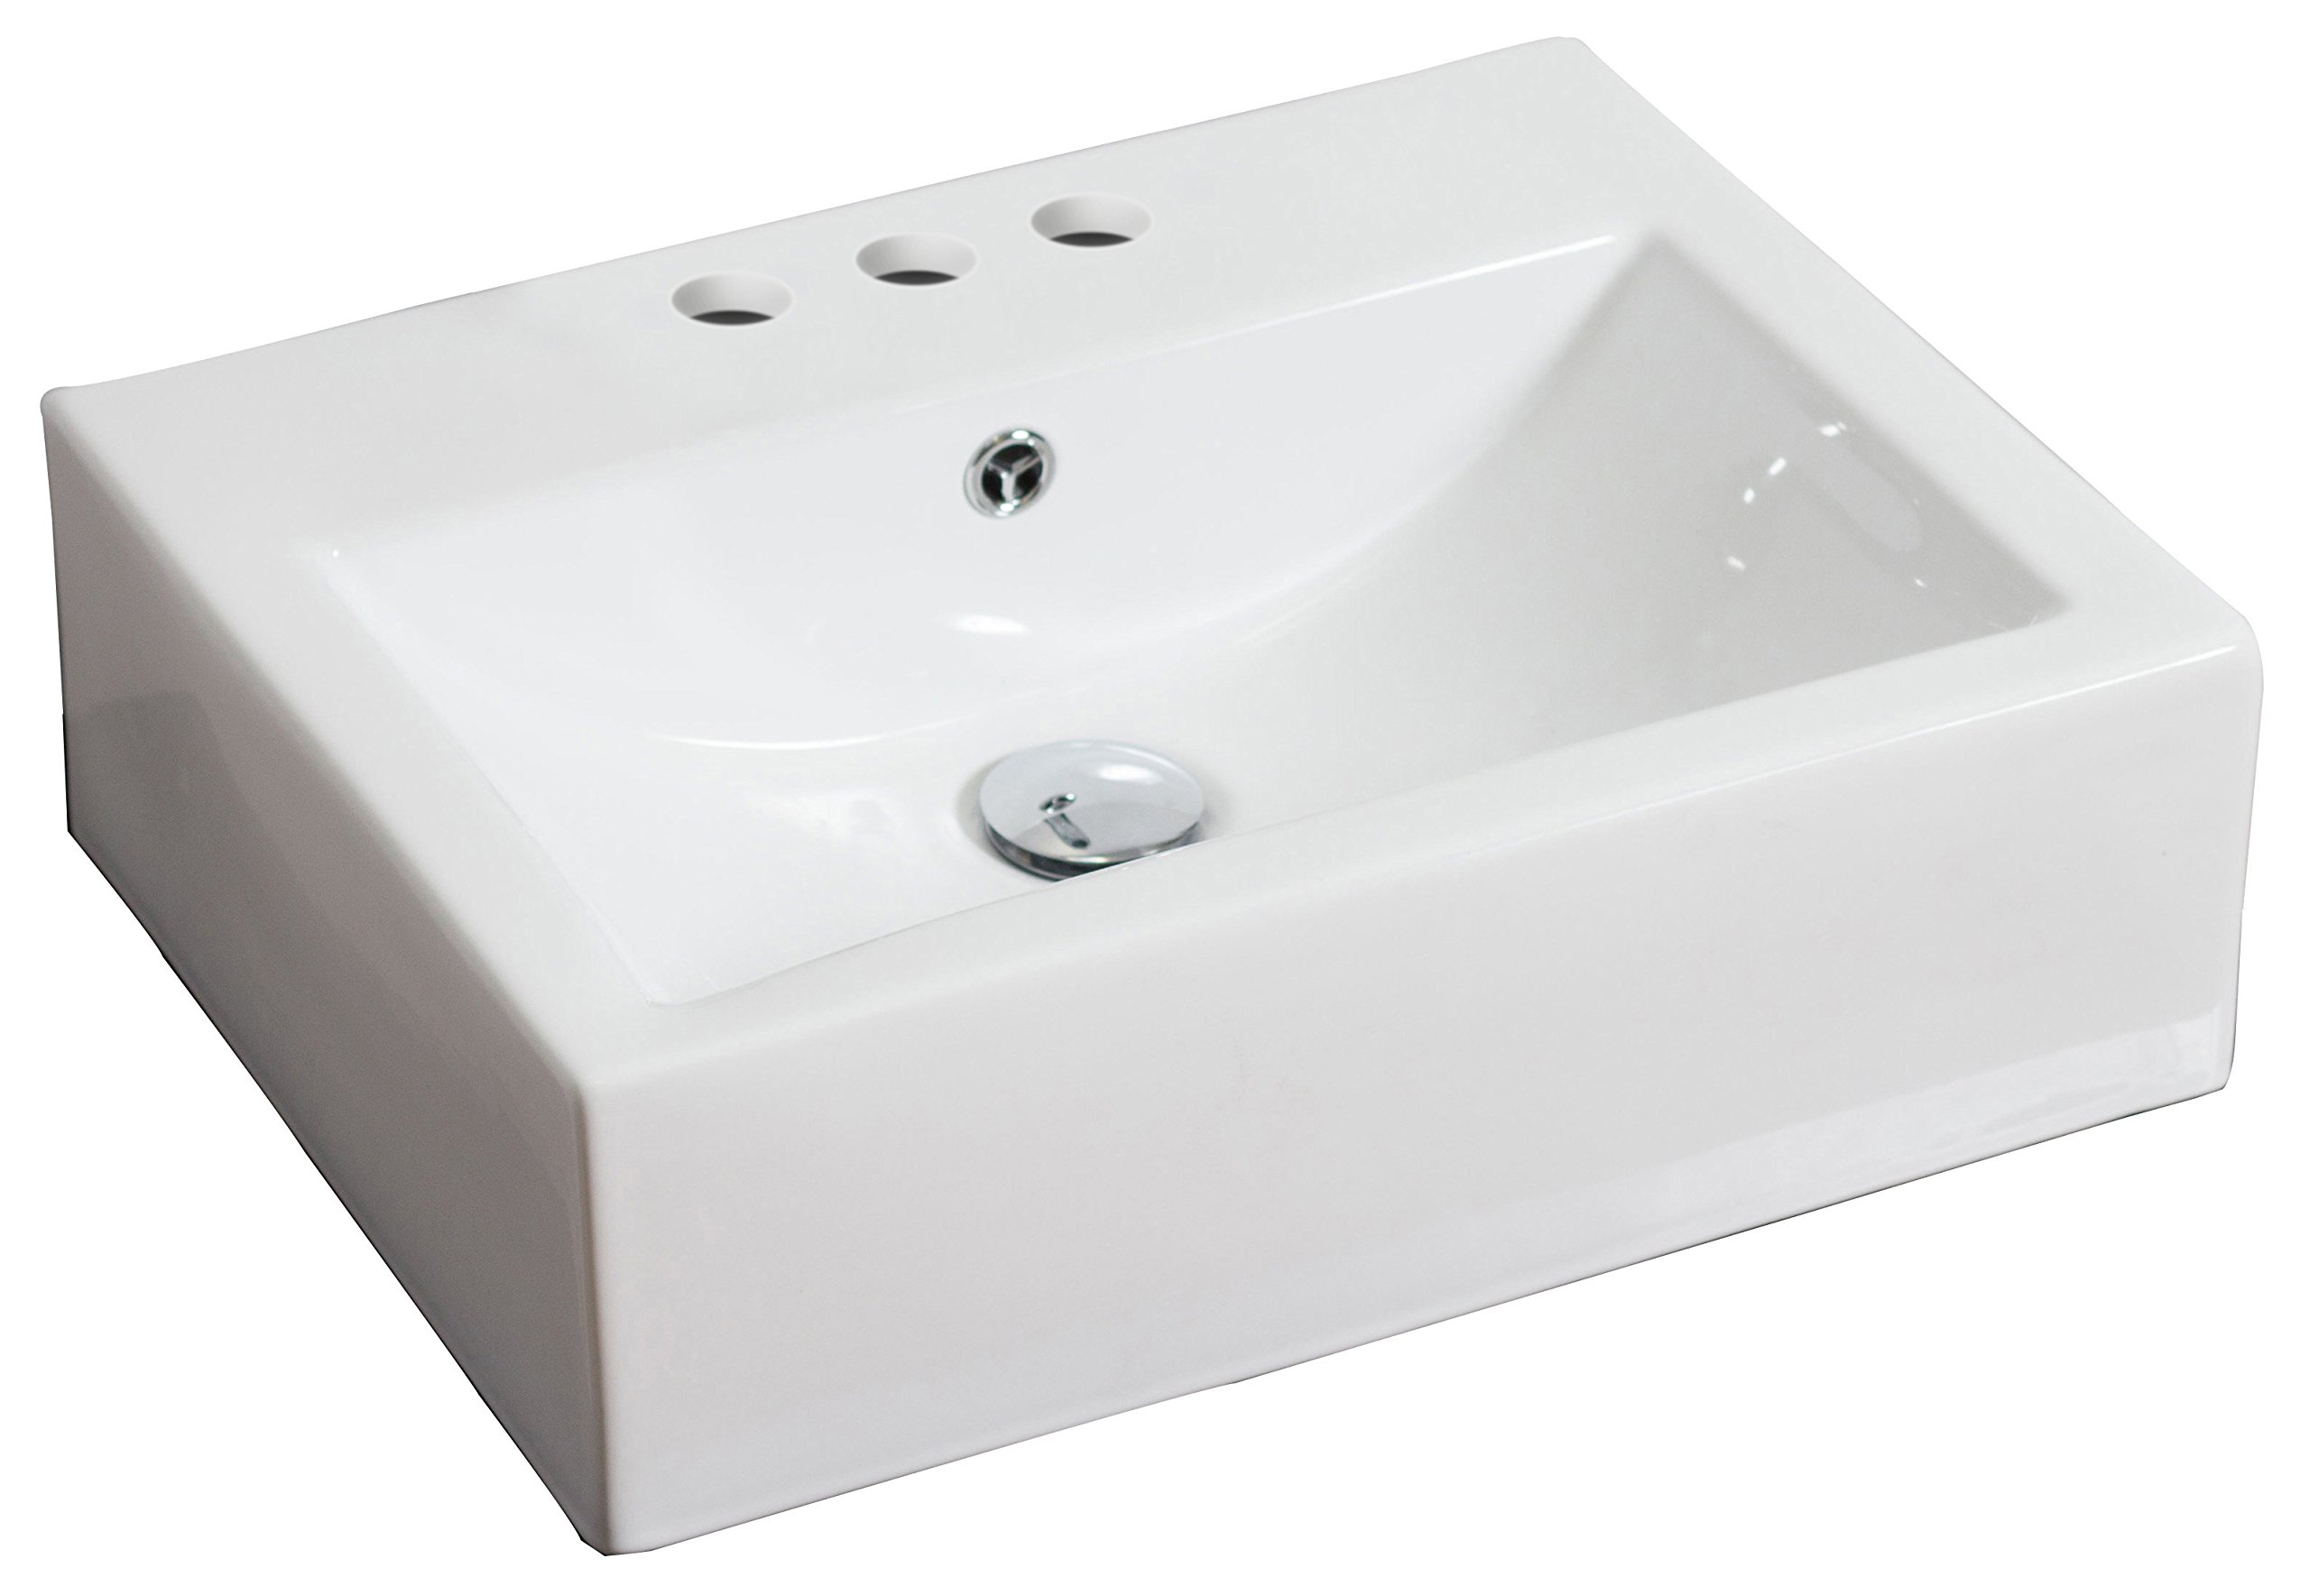 American Imaginations Rectangle Shape Vessel, comes with an Enamel Glaze Finish in White Color and Designed for a 4-In. O.C. Faucet